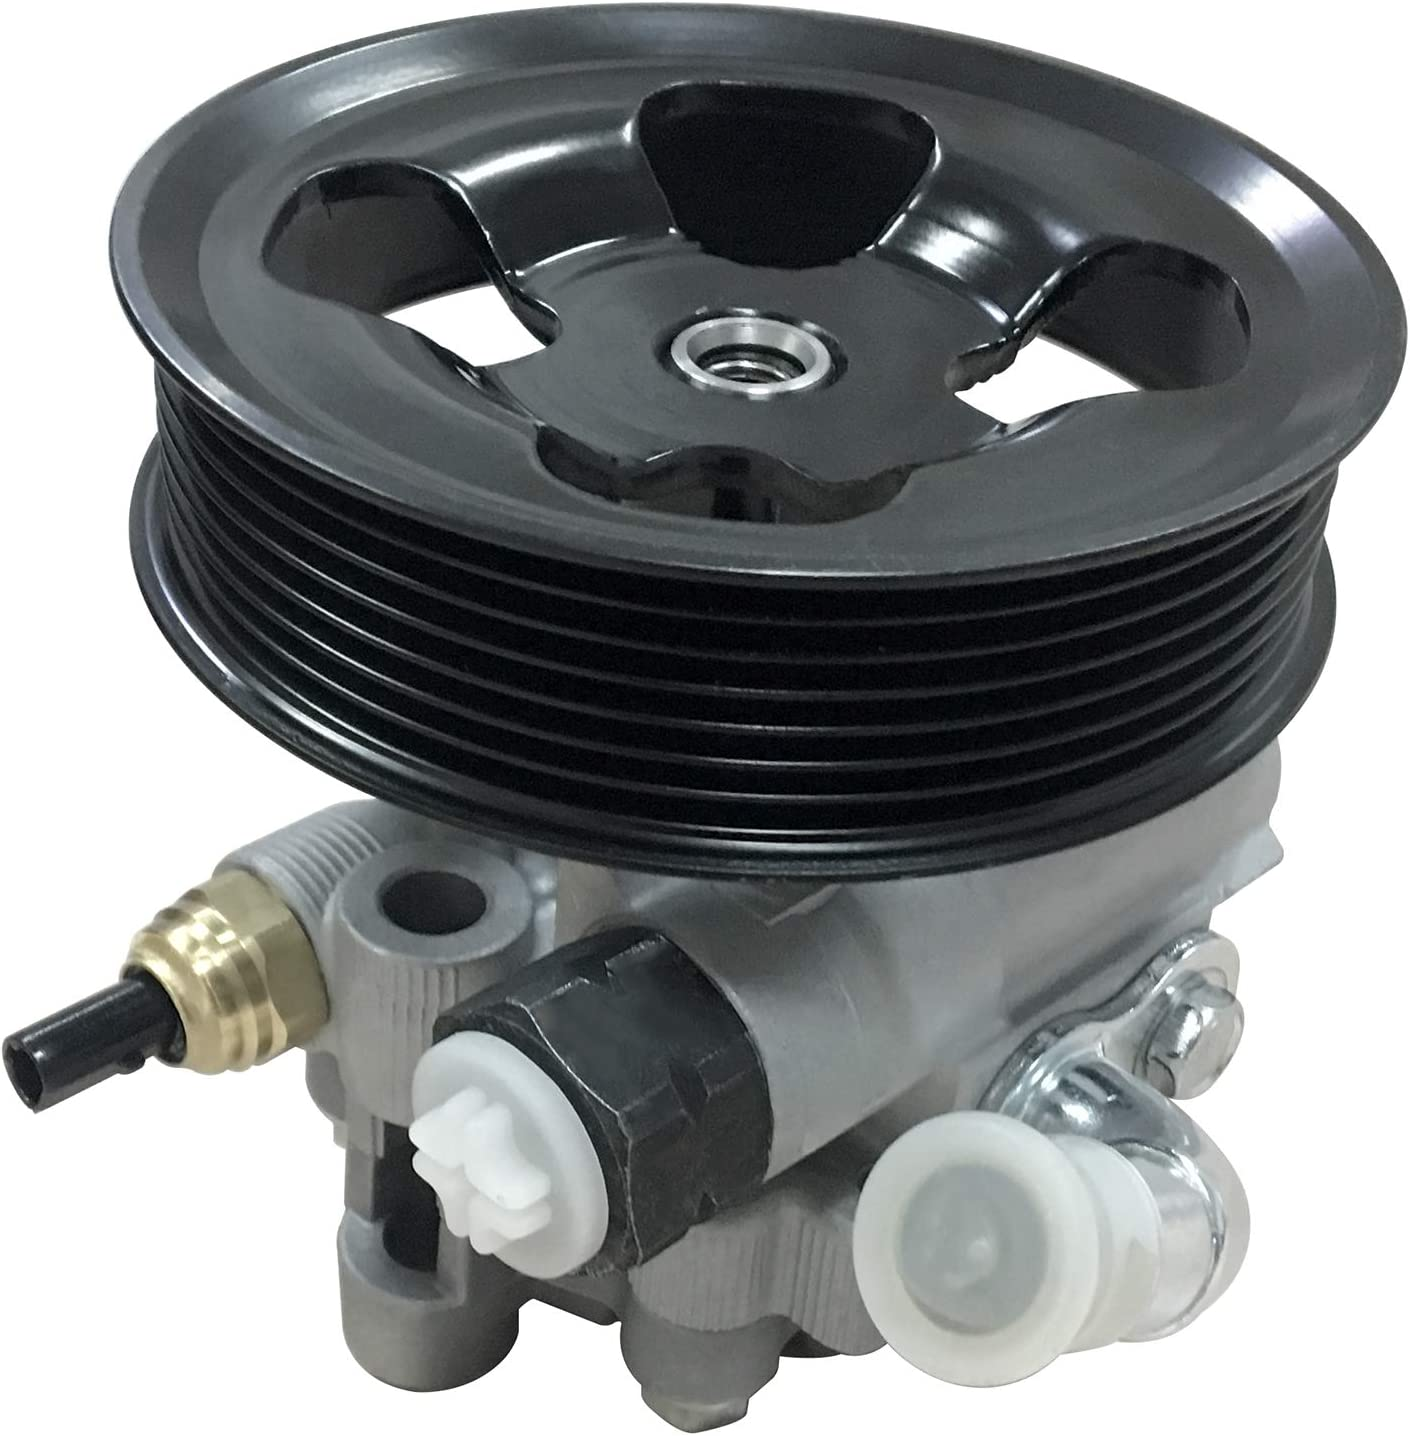 Exerock Power Steering Assist Pump Replace # 44310-06130 Compatible with 2002-2009 Camry 2.4L 2002 2003 2004 2005 2006 2007 2008 Solara 2.4L